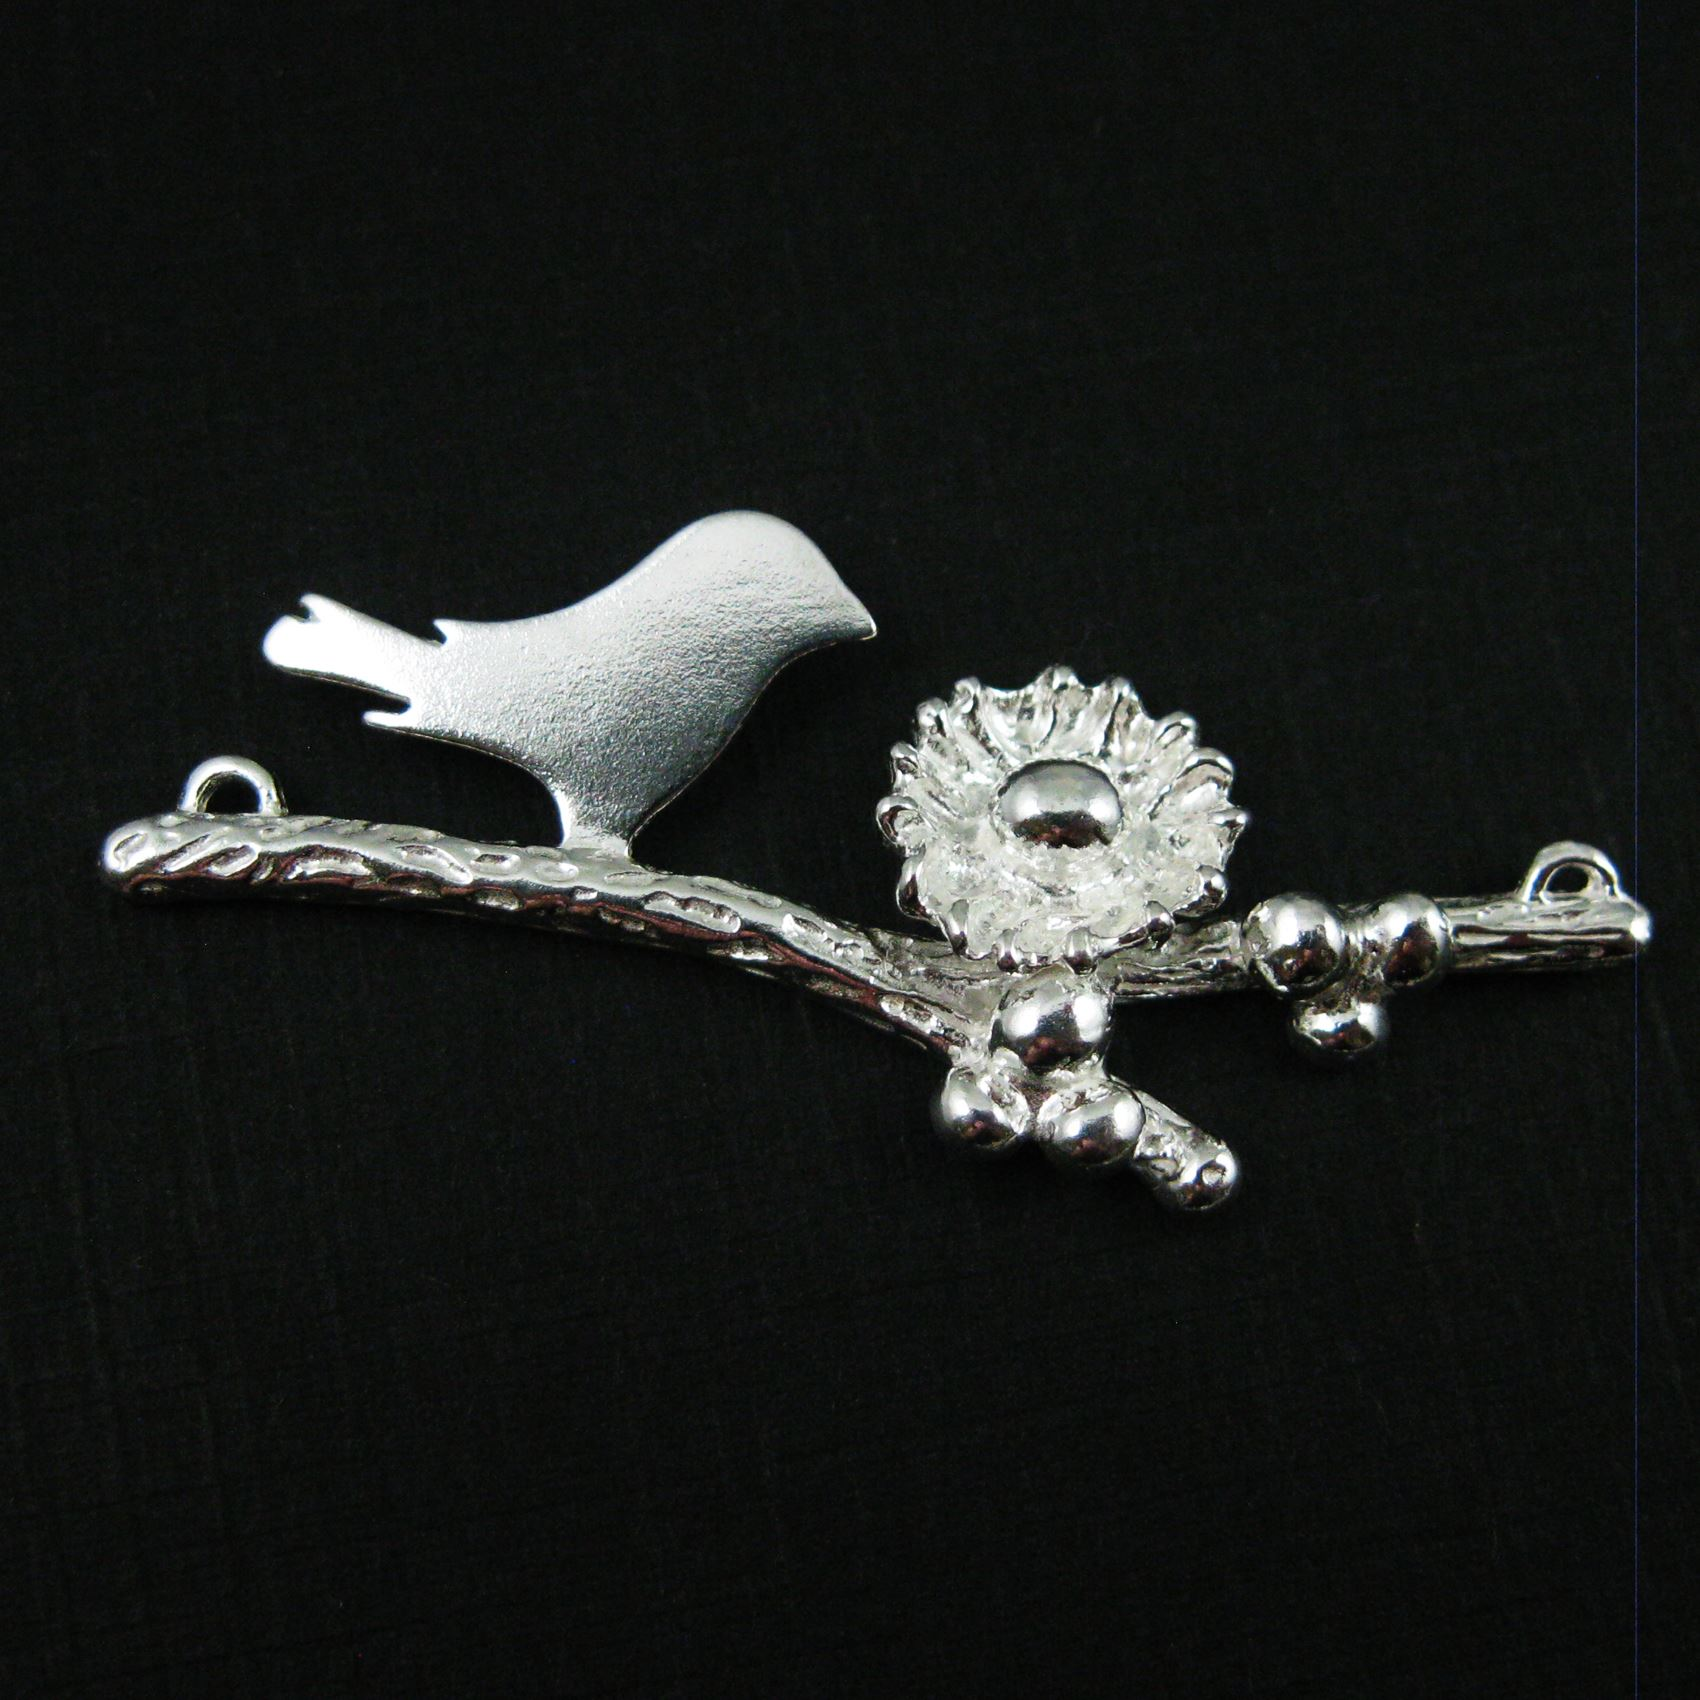 925 Sterling Silver, Mother and Baby Bird Branch and Nest Connector - 1 Egg - 48mm